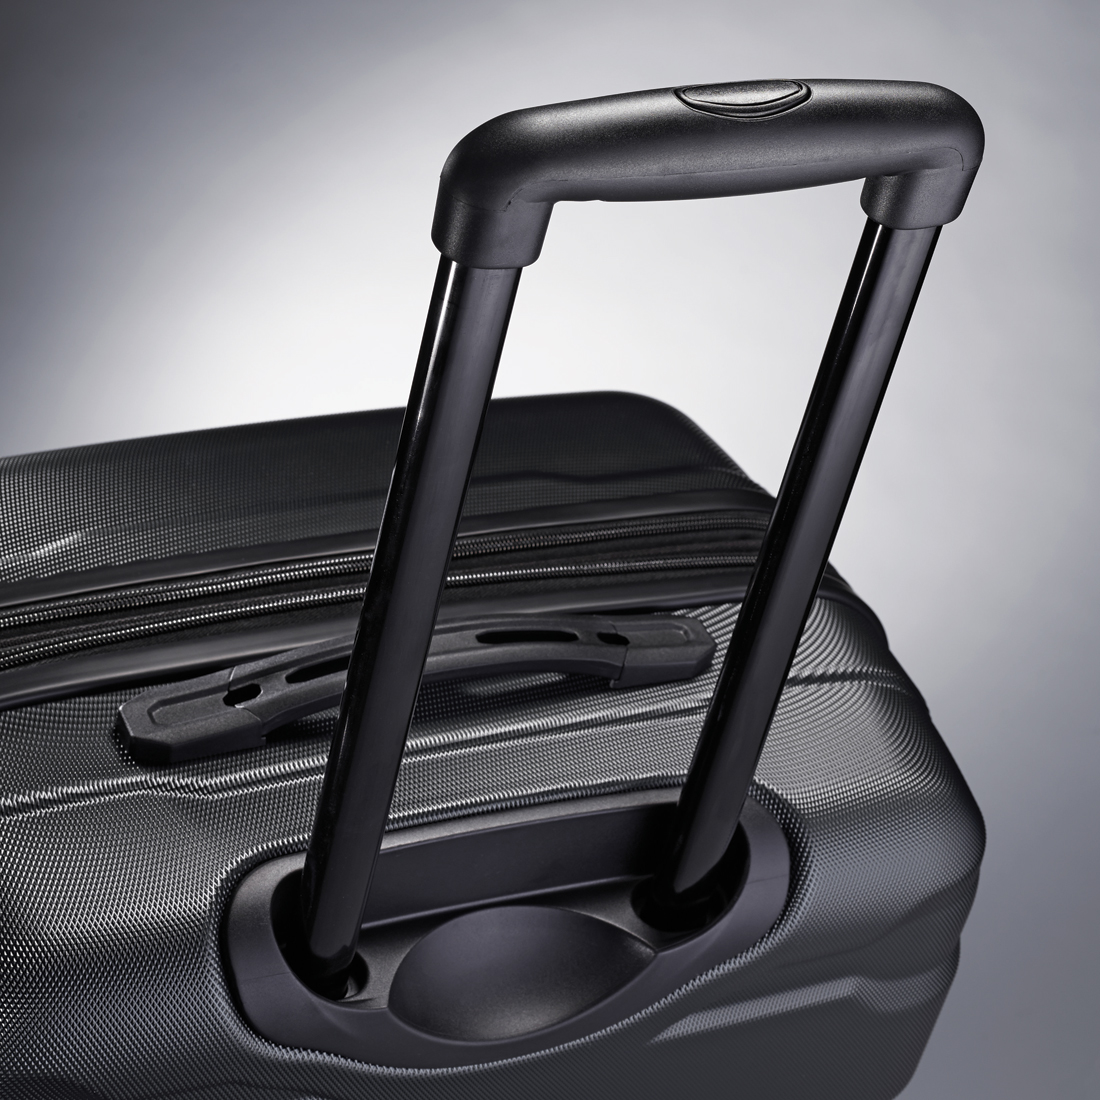 Samsonite-Omni-24-Inch-Hardside-Spinner-Luggage-Suitcase-Choose-Color thumbnail 4